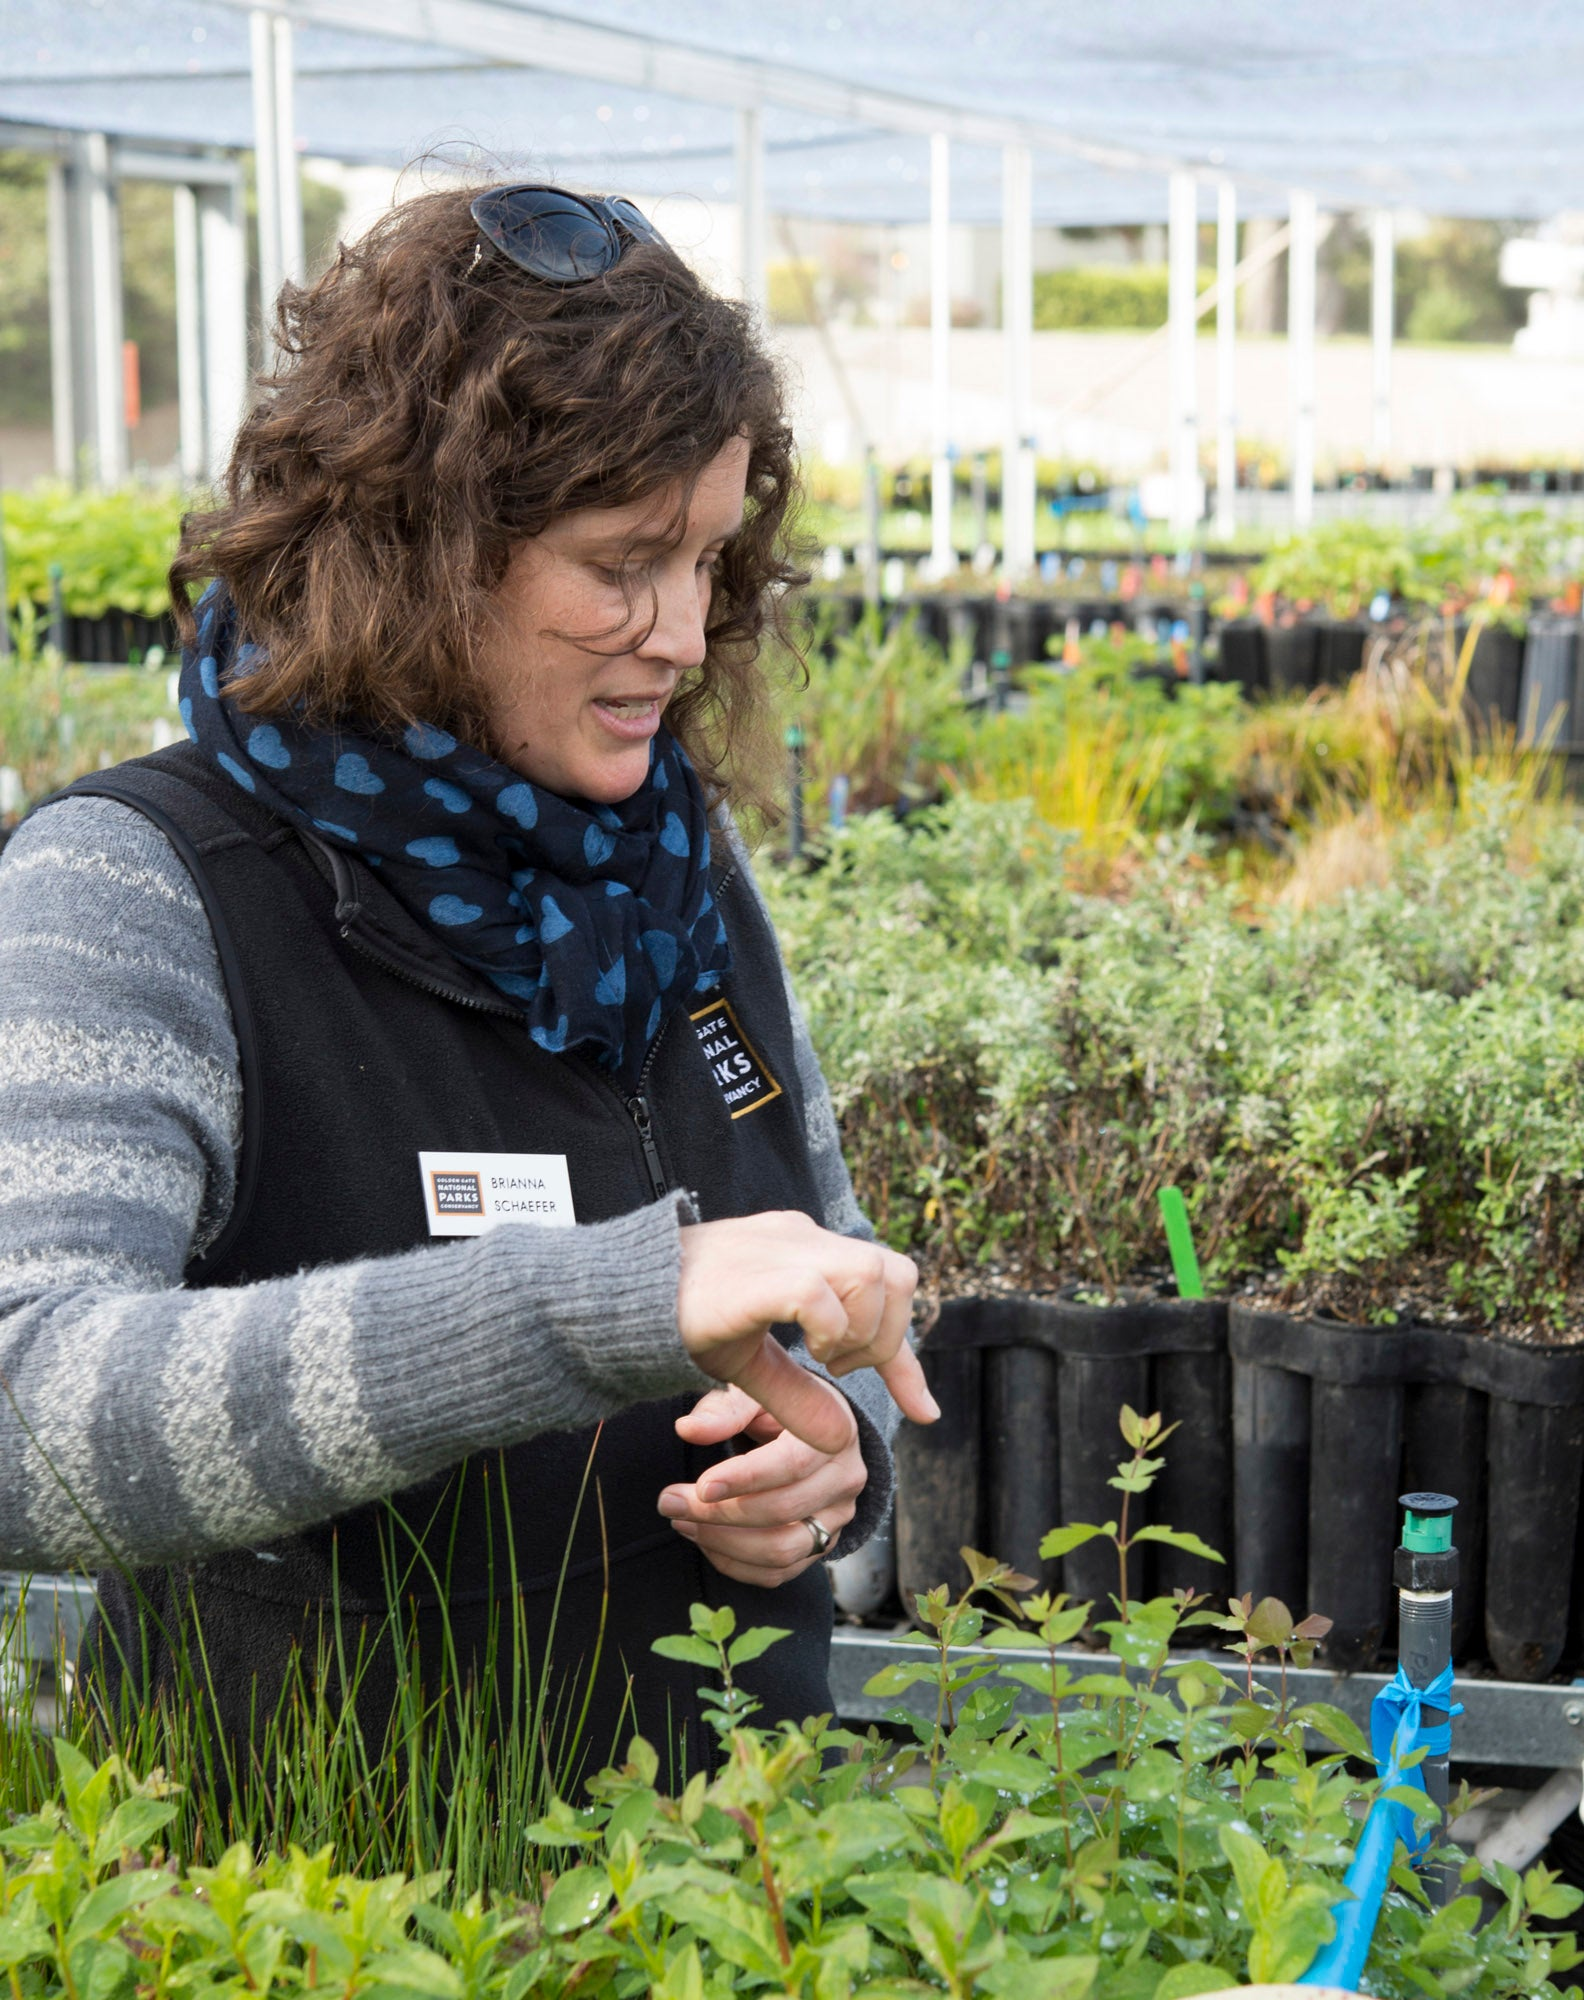 In the greenhouse, Nursery manager Brianna Schaefer points out native species that will be incorporated into the parkway landscape.